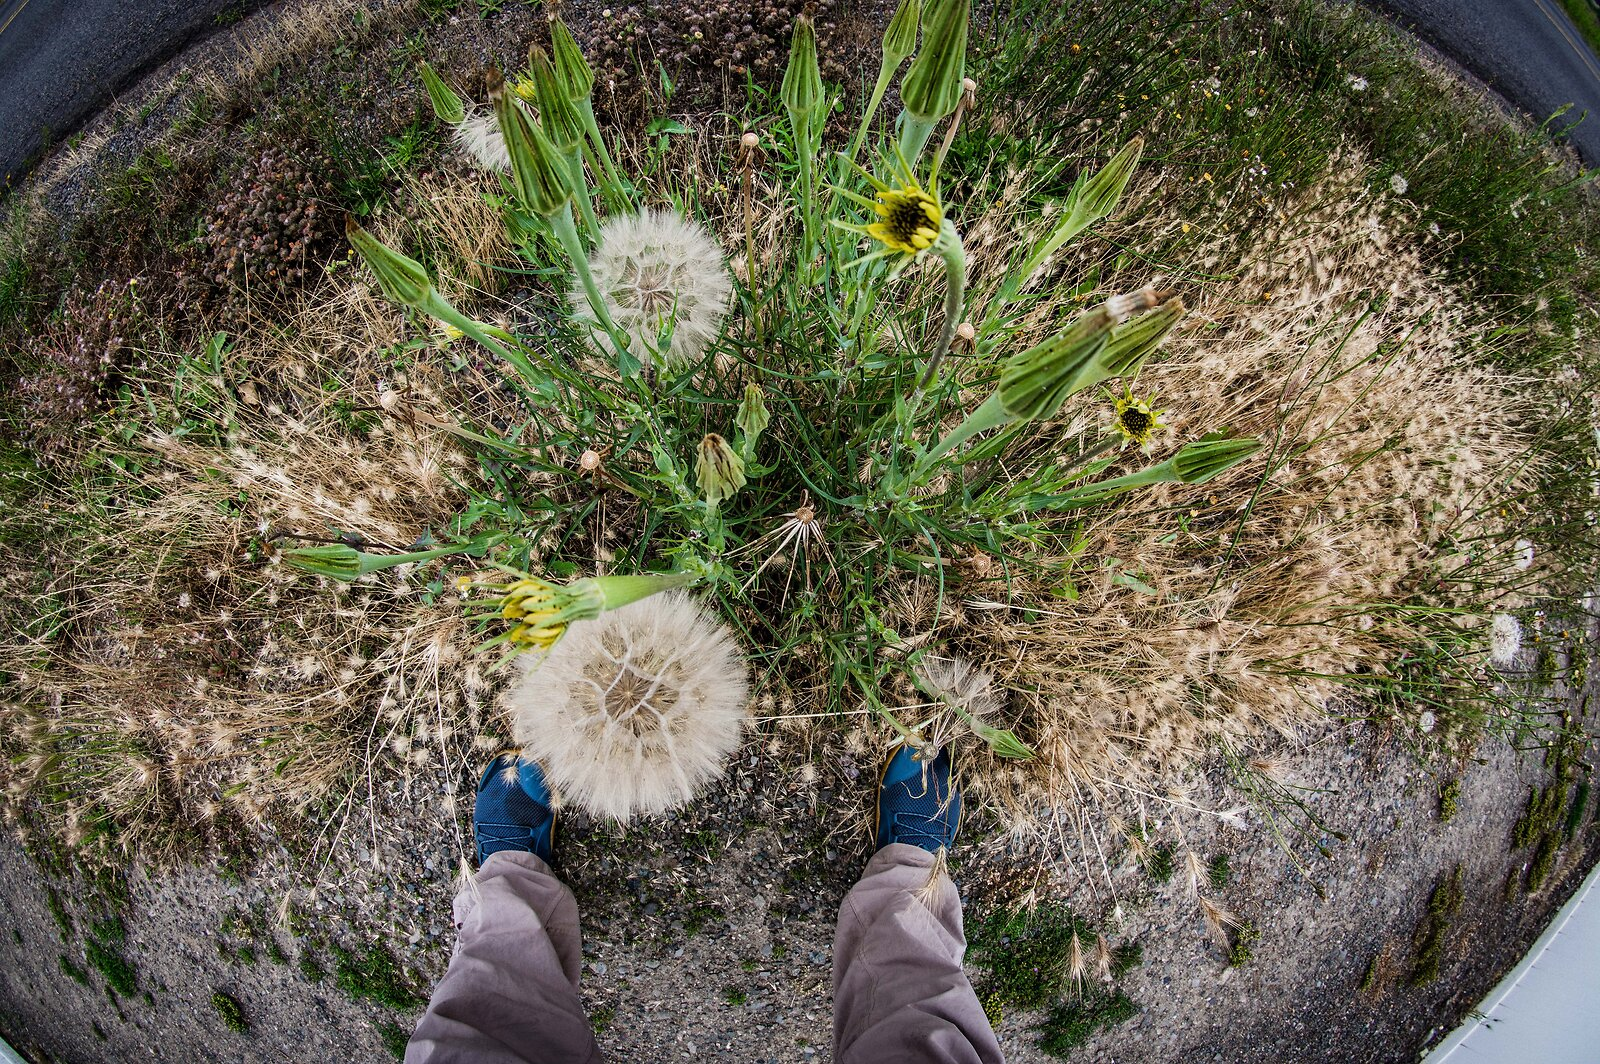 KP_June15_Fisheye_Feet.jpg